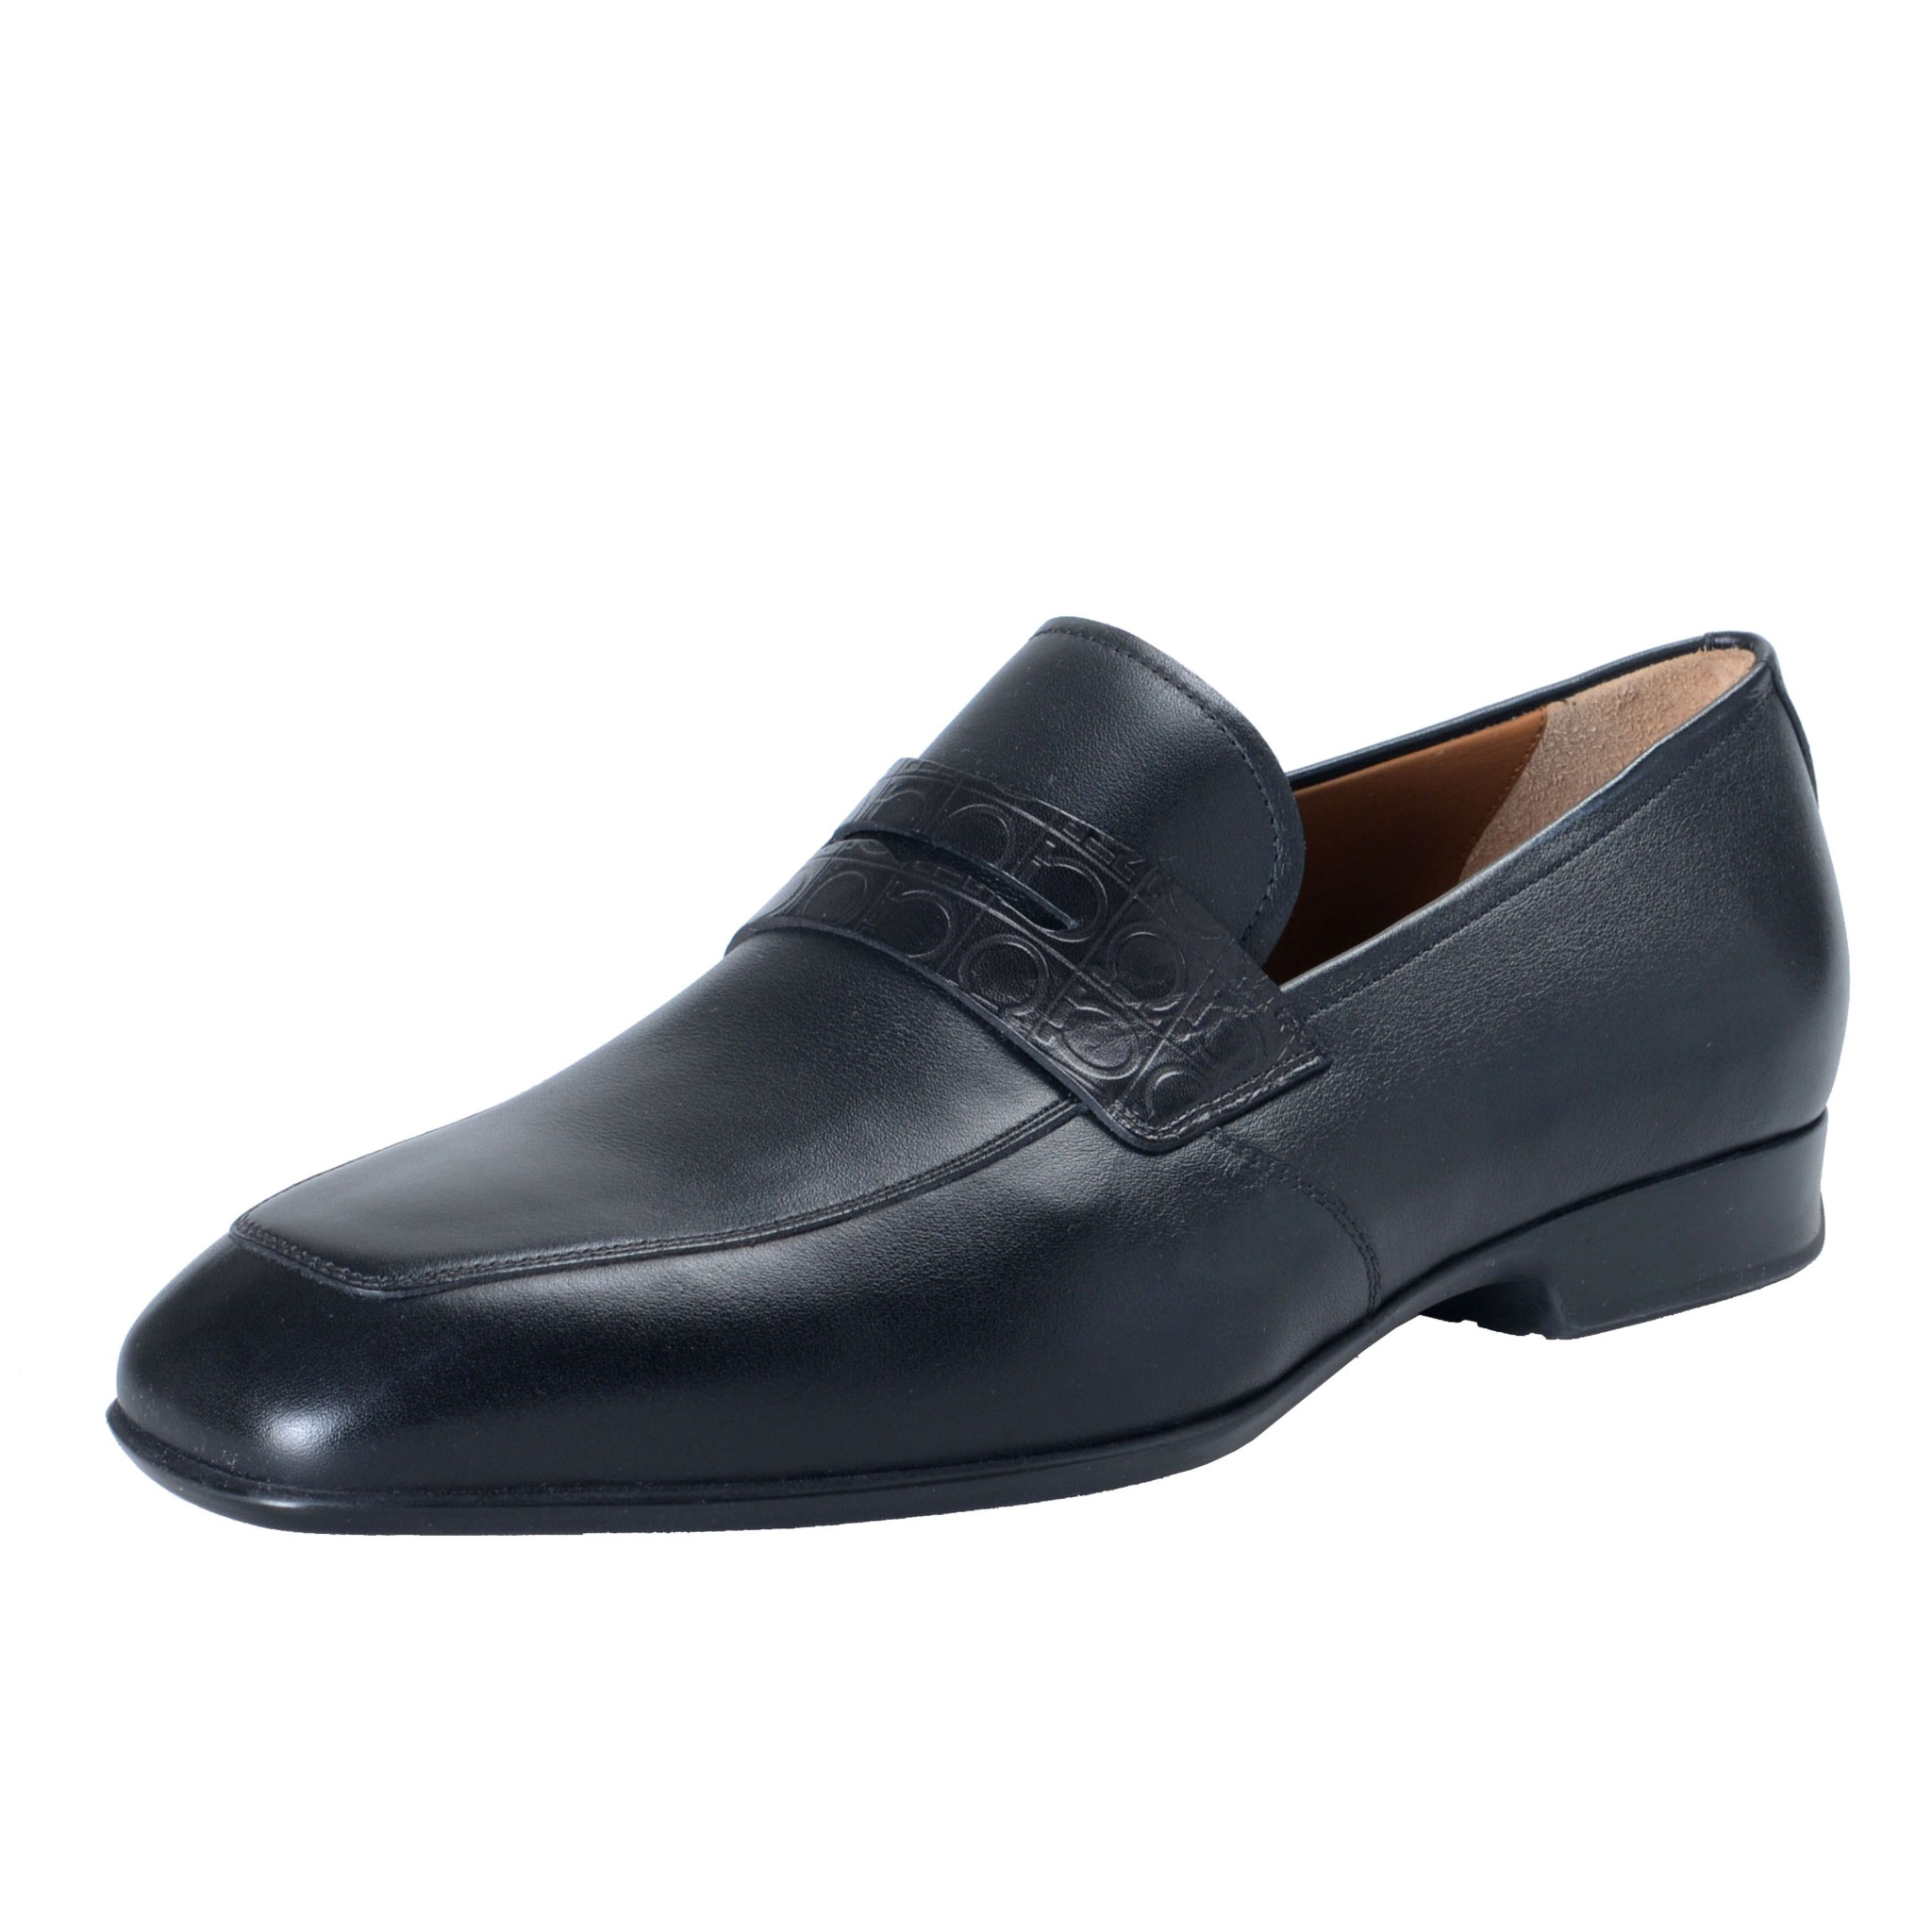 Leather Black Loafers Slip On Shoes